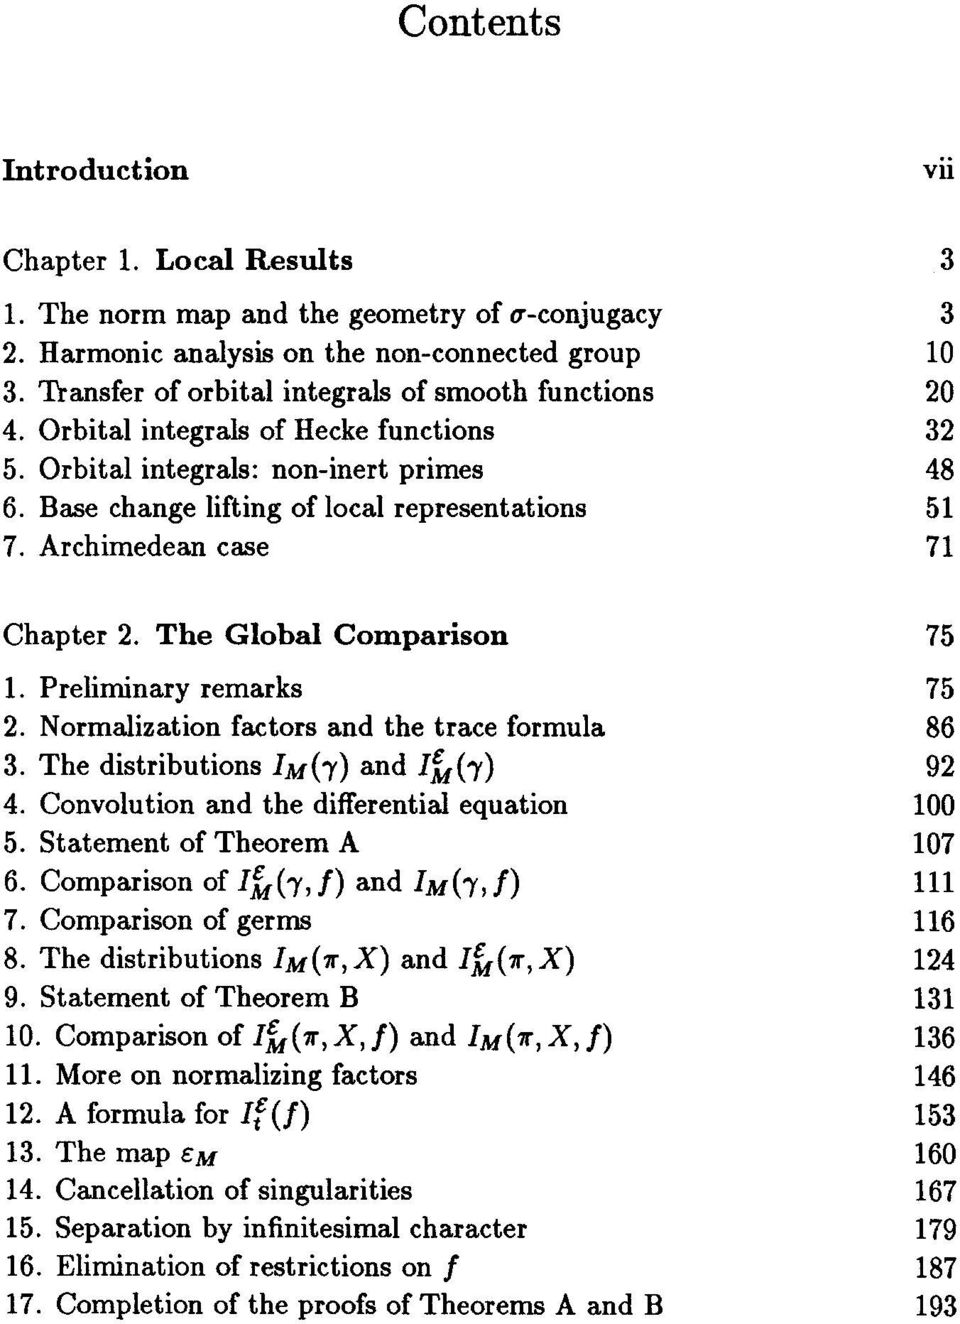 Archimedean case 71 Chapter 2. The Global Comparison 75 1. Preliminary remarks 75 2. Normalization factors and the trace formula 86 3. The distributions IM(-) and IM(7) 92 4.